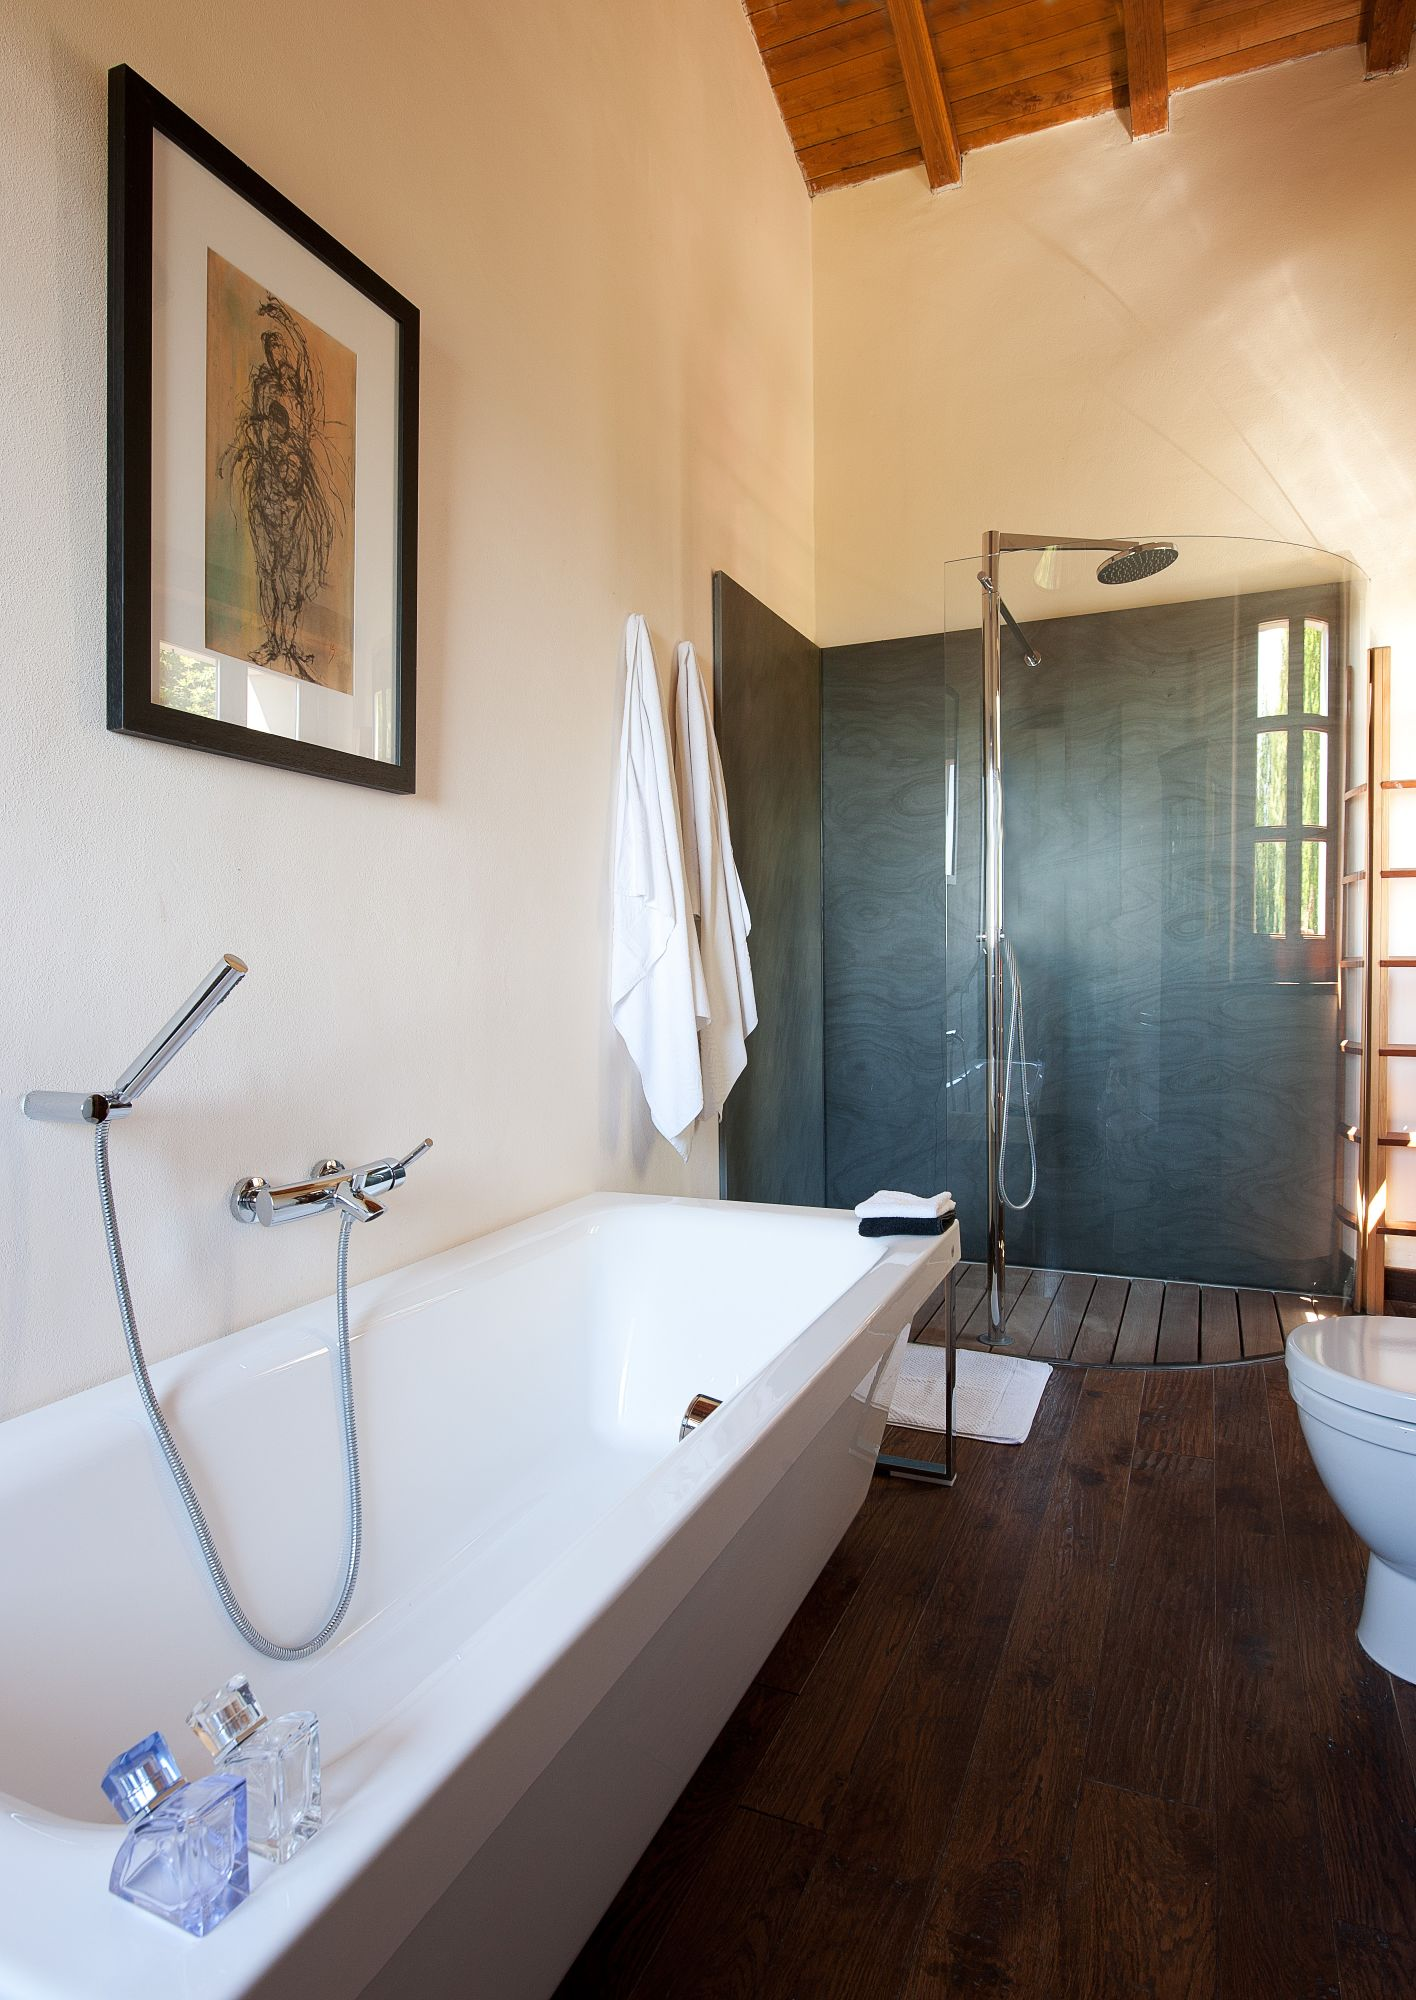 Upstairs en suite bathroom...